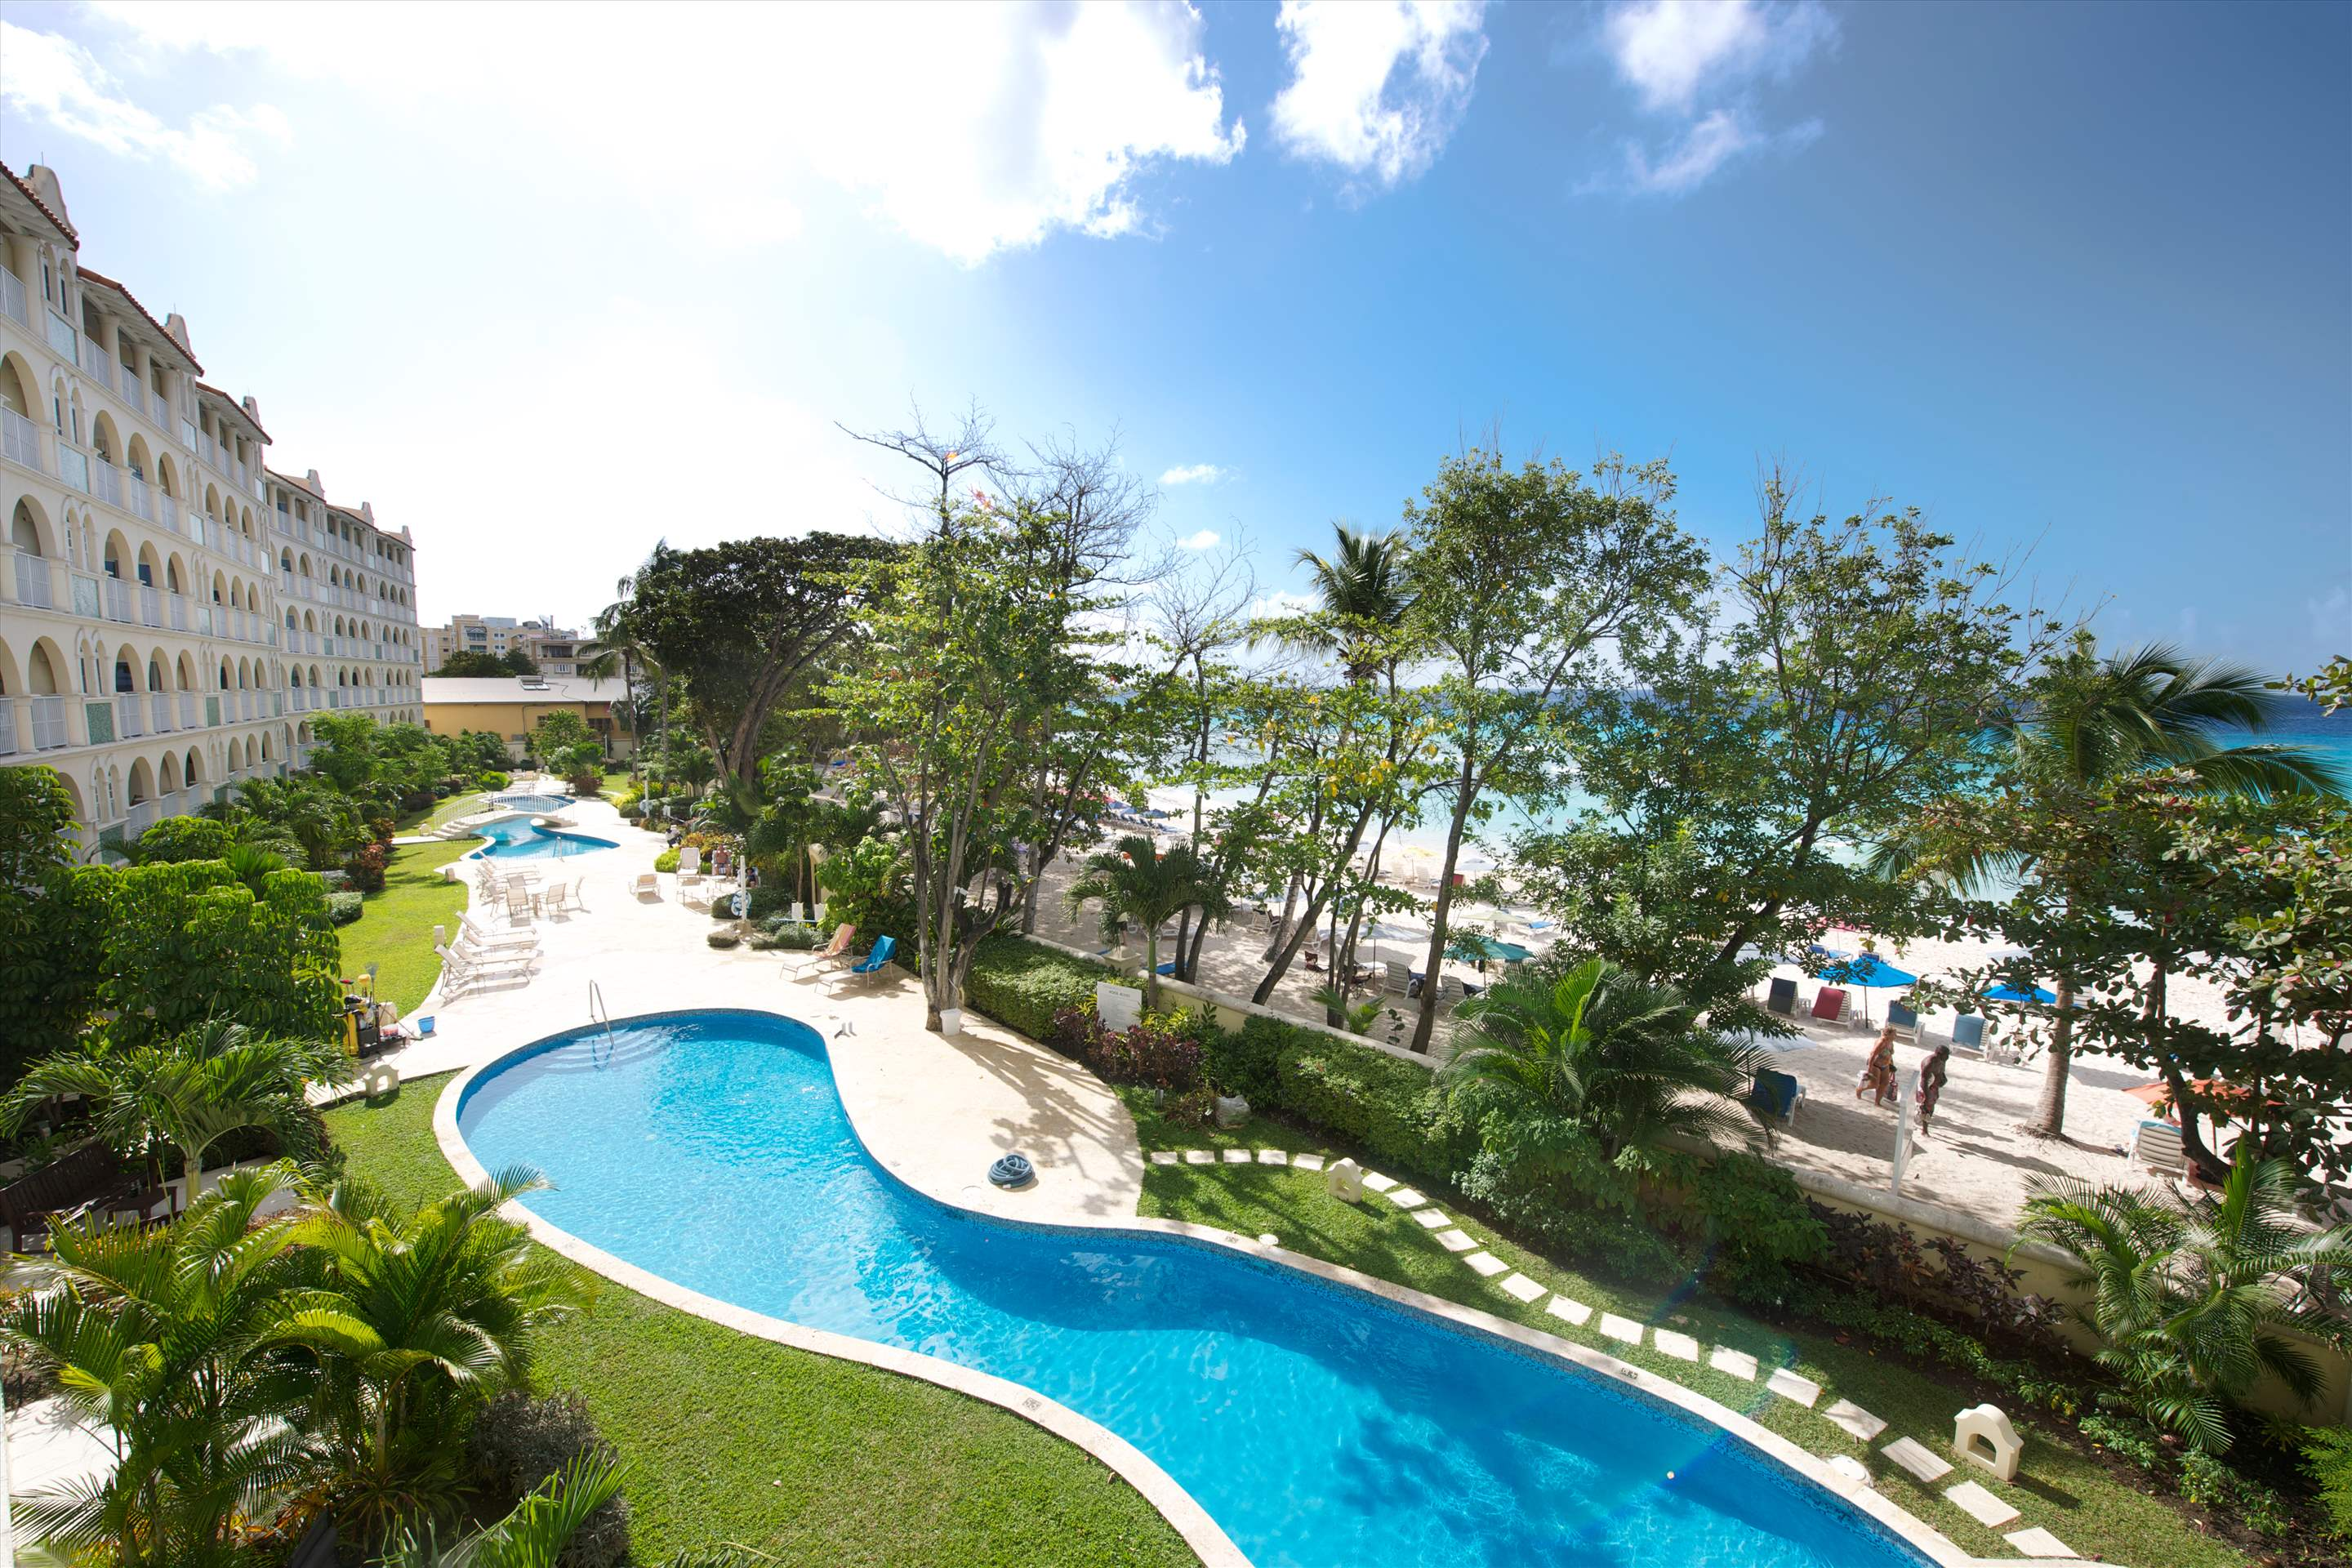 Sapphire Beach 203, 2 bedroom, 3 bedroom apartment in St. Lawrence Gap & South Coast, Barbados